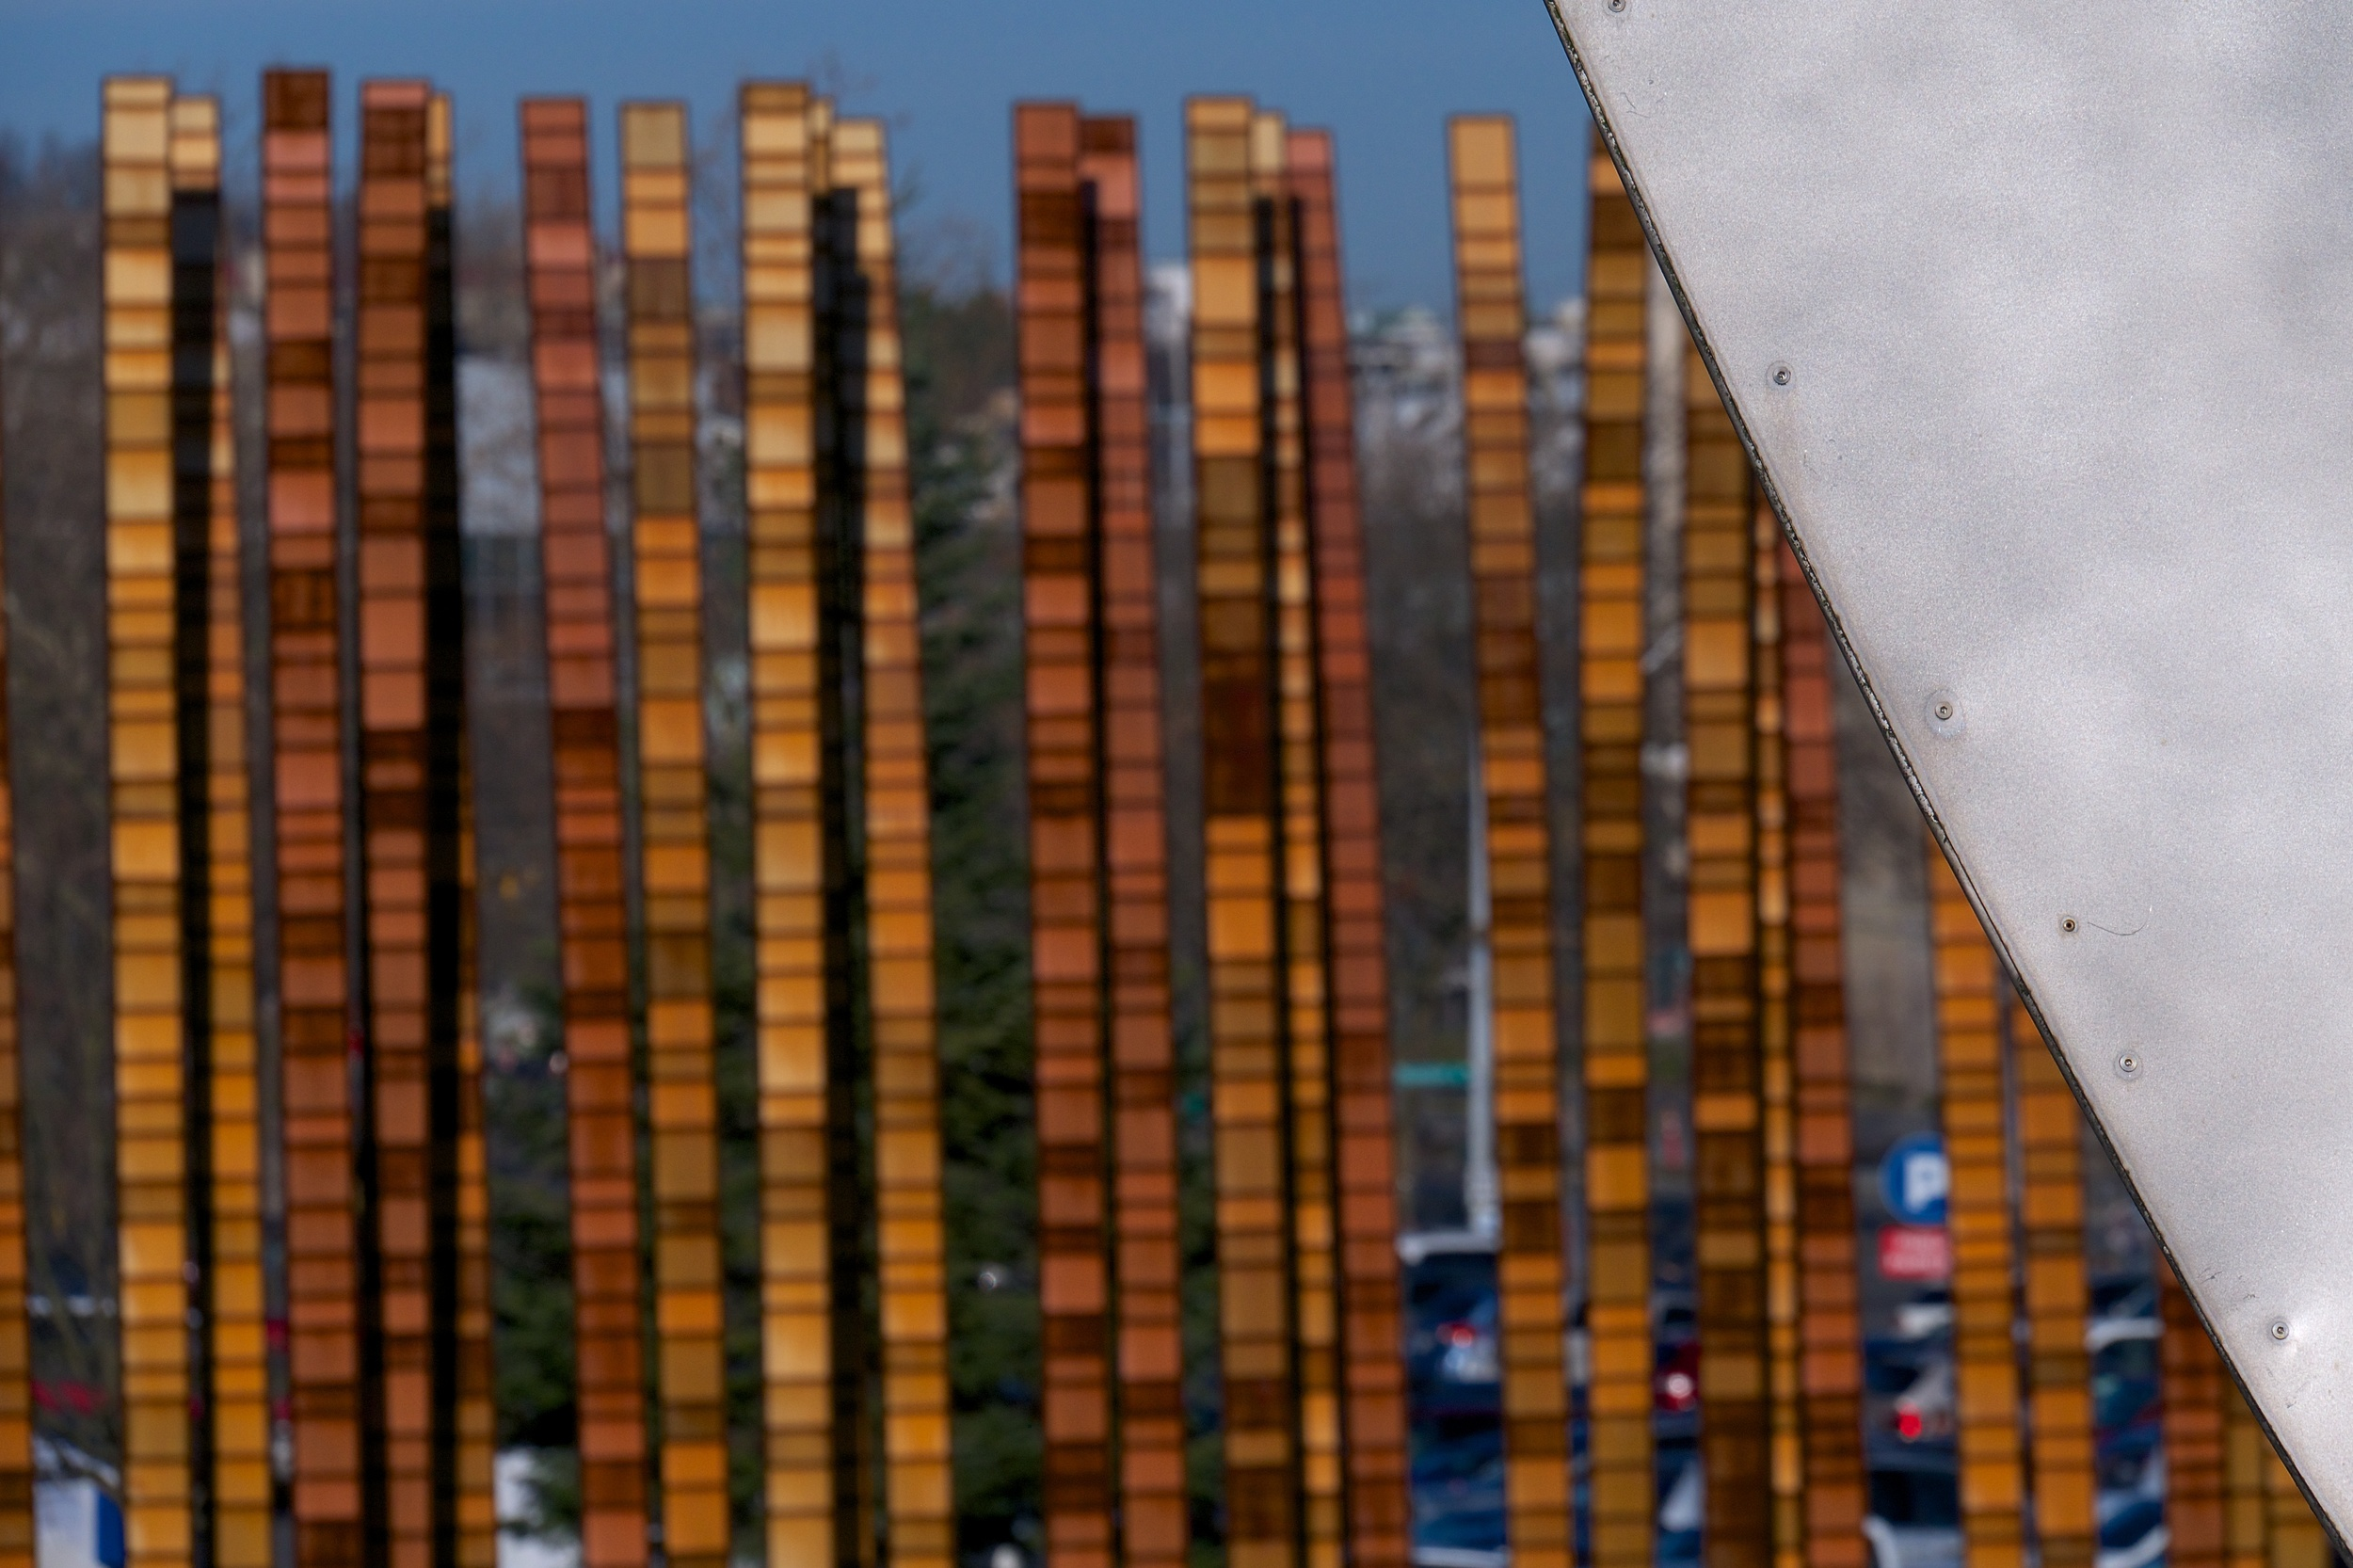 Bamboo Forest and Experience Music Project, 100mm, f/8, 1/2000, ISO 200